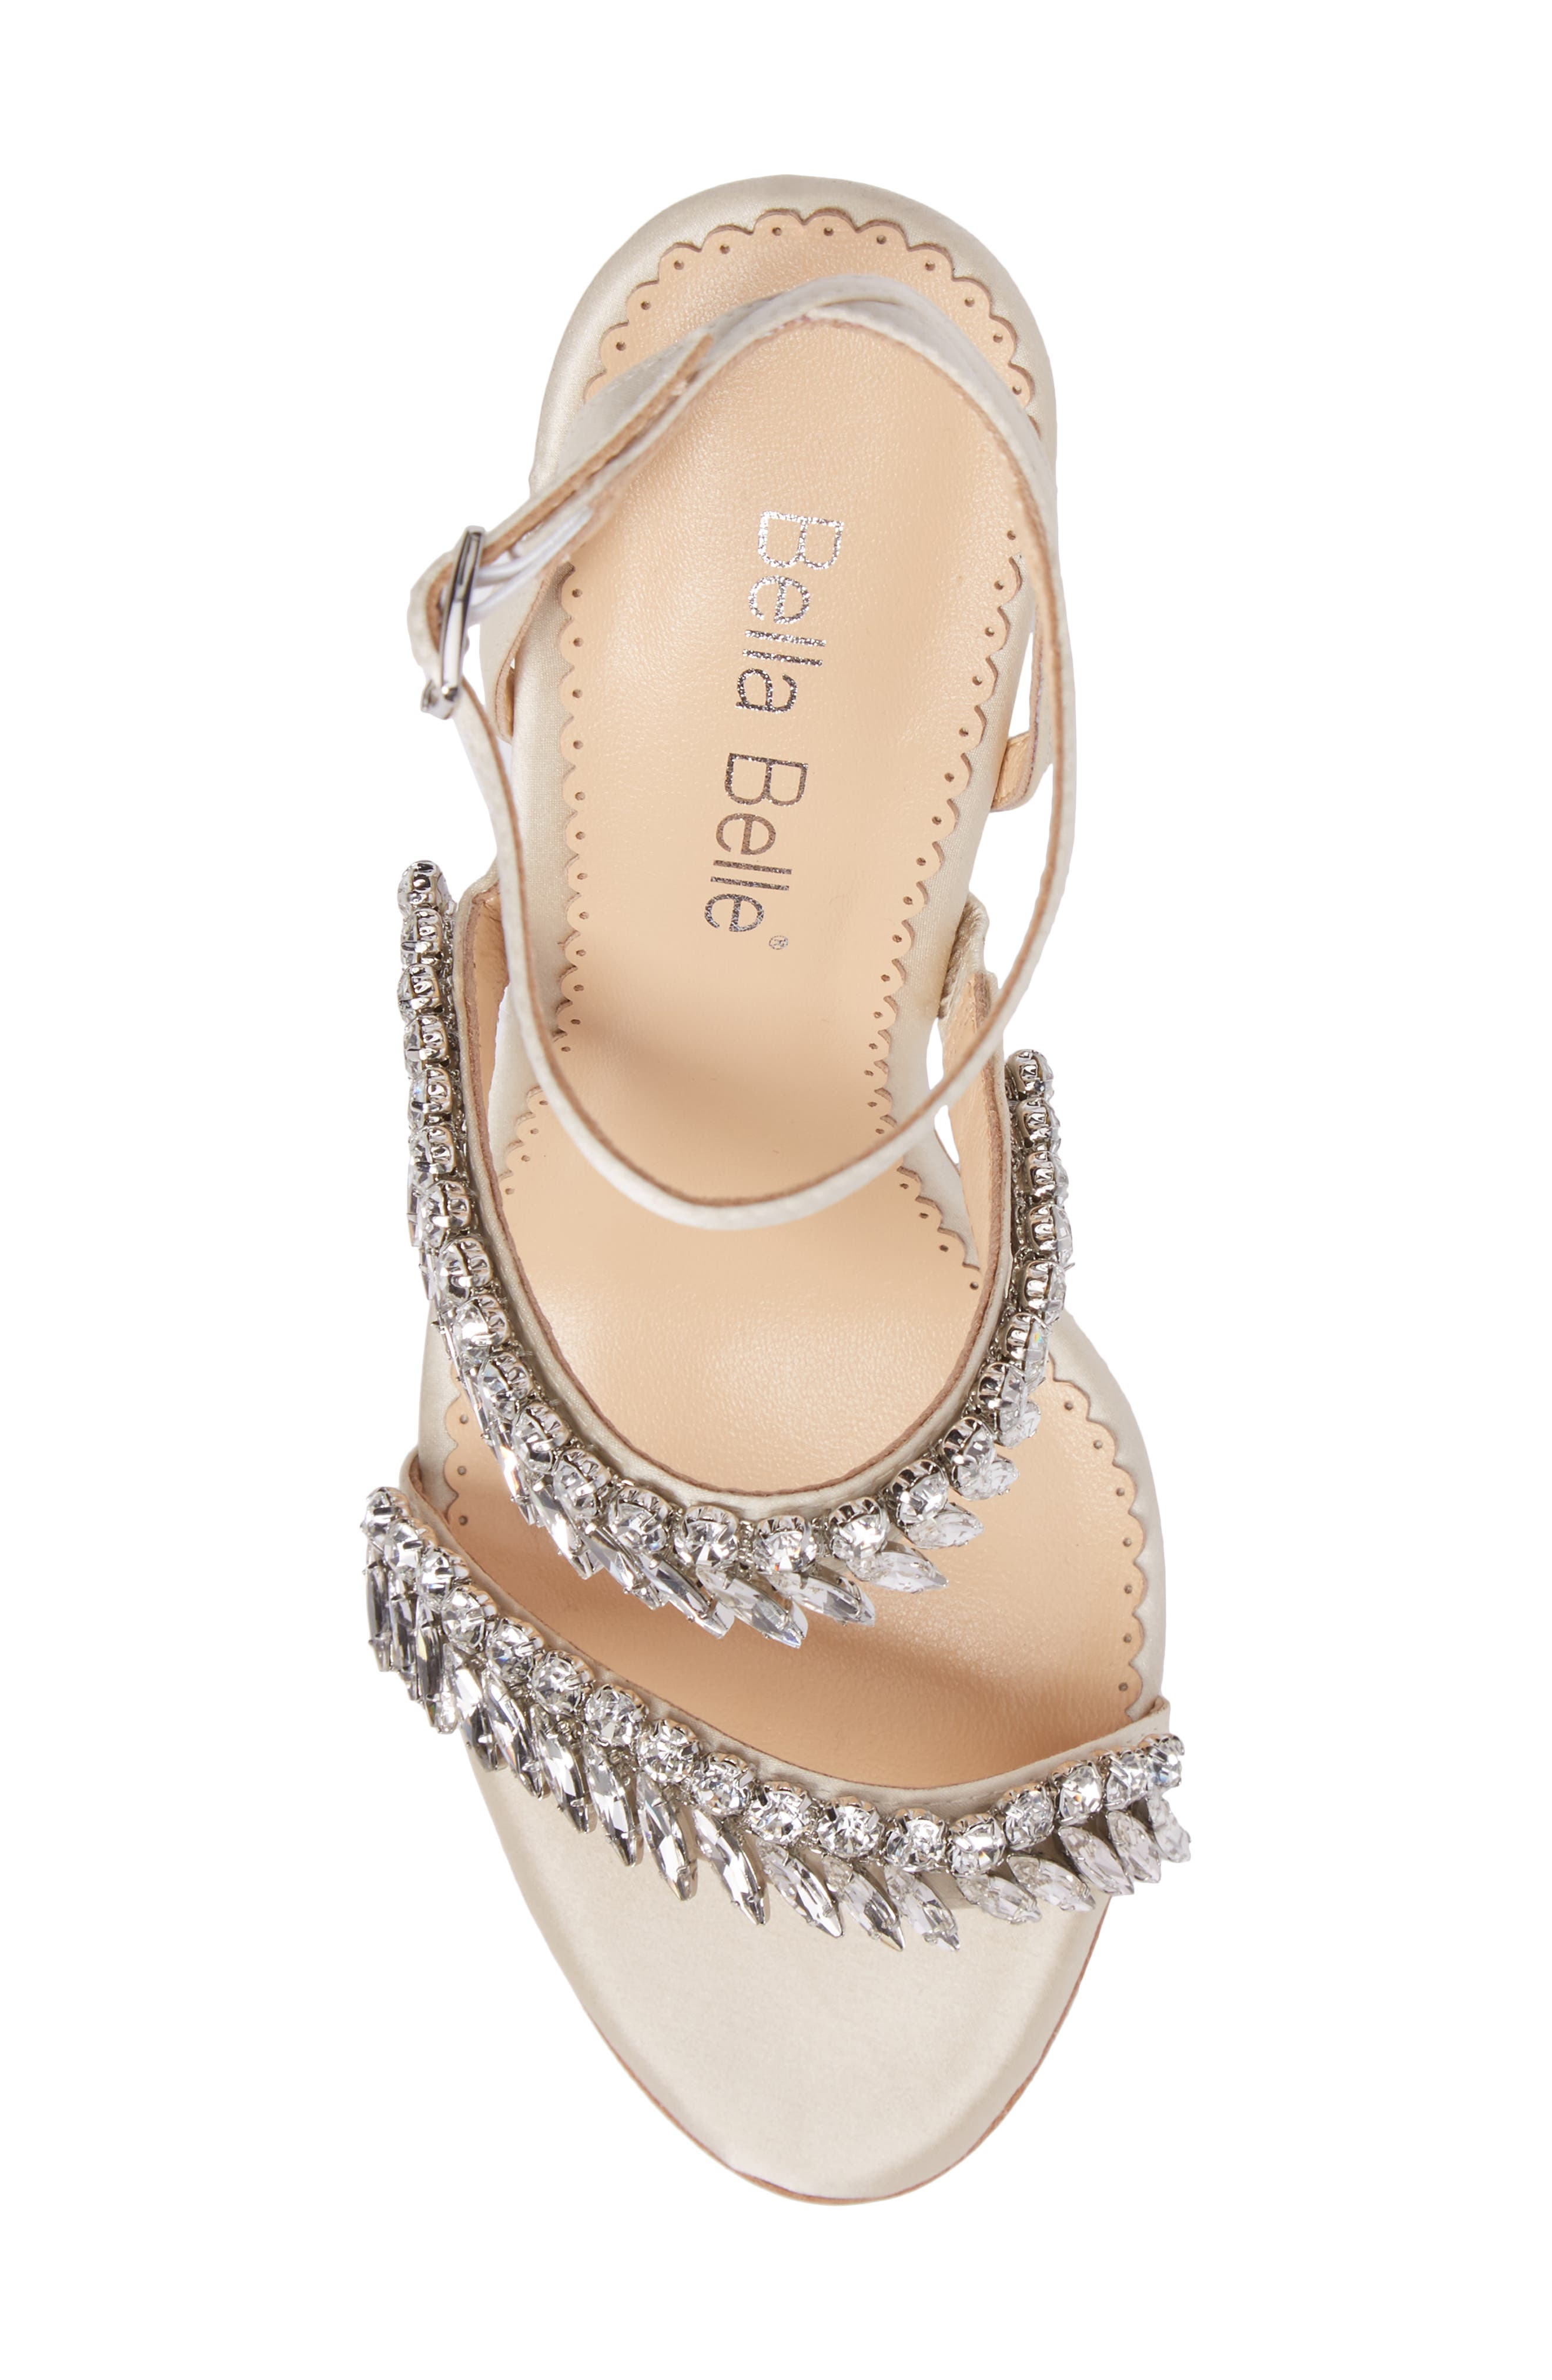 Belinda Embellished Sandal,                             Alternate thumbnail 5, color,                             Champagne